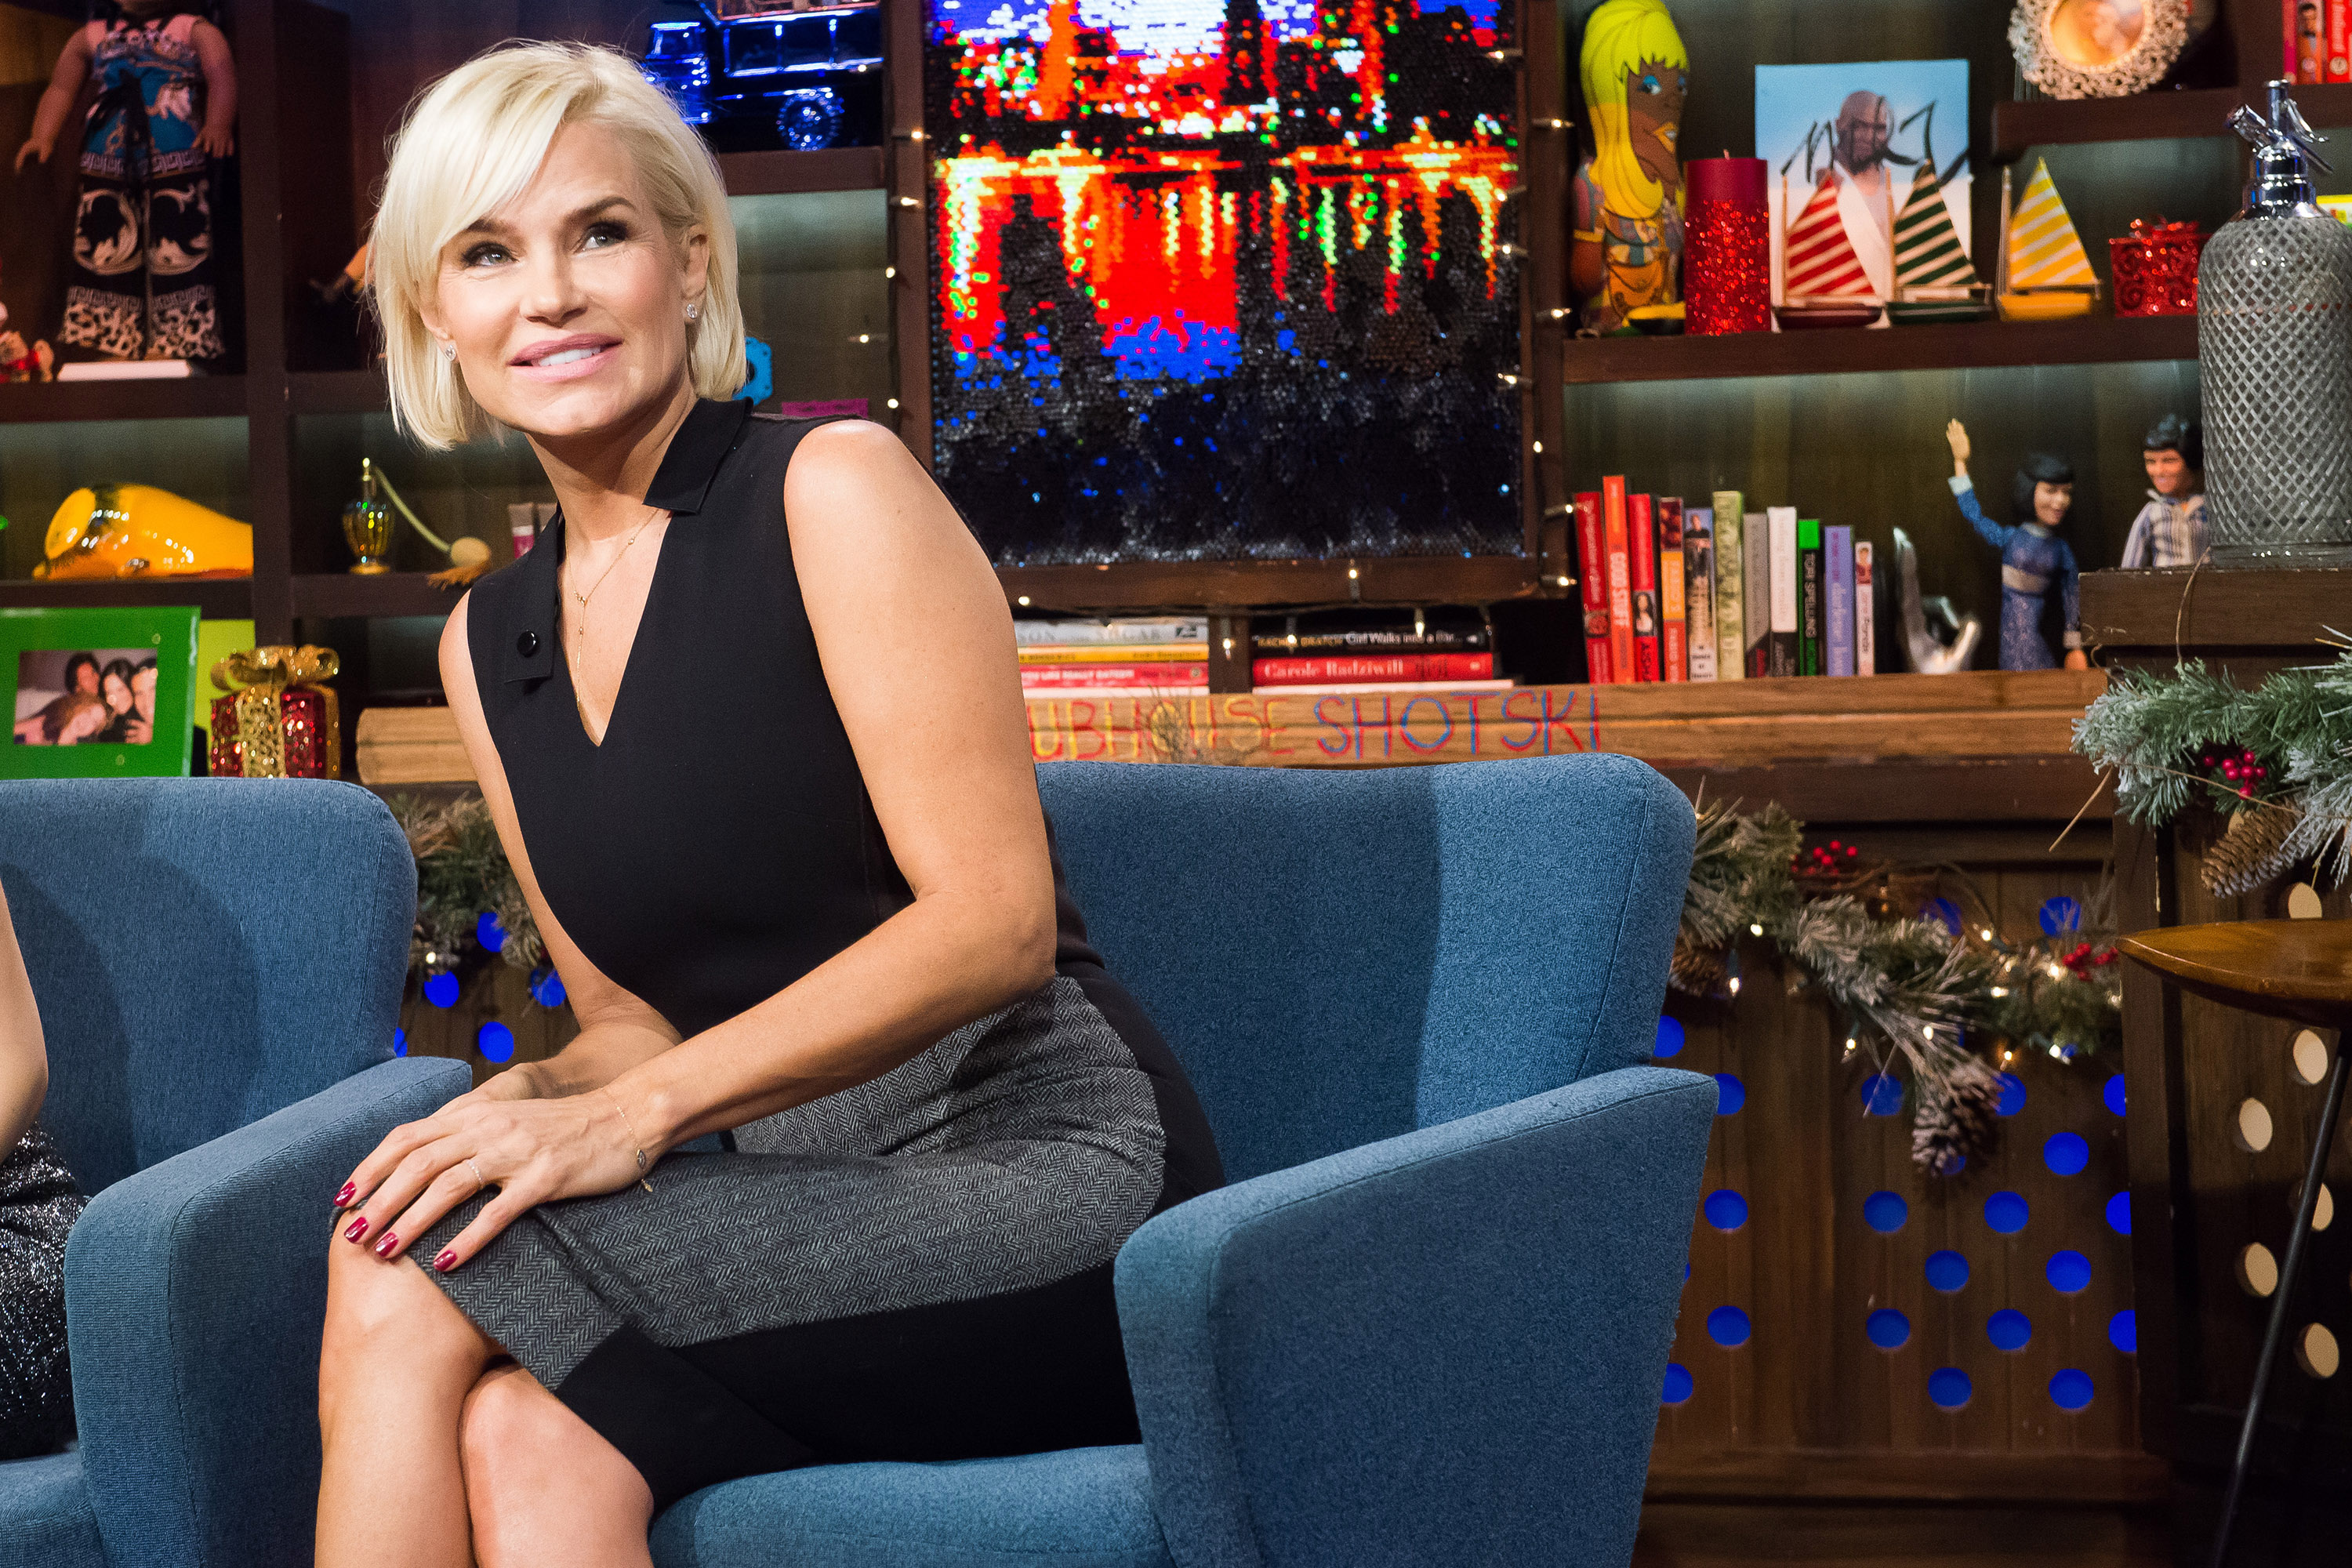 Yolanda Foster on Watch What Happens Live on Dec. 23, 2014.